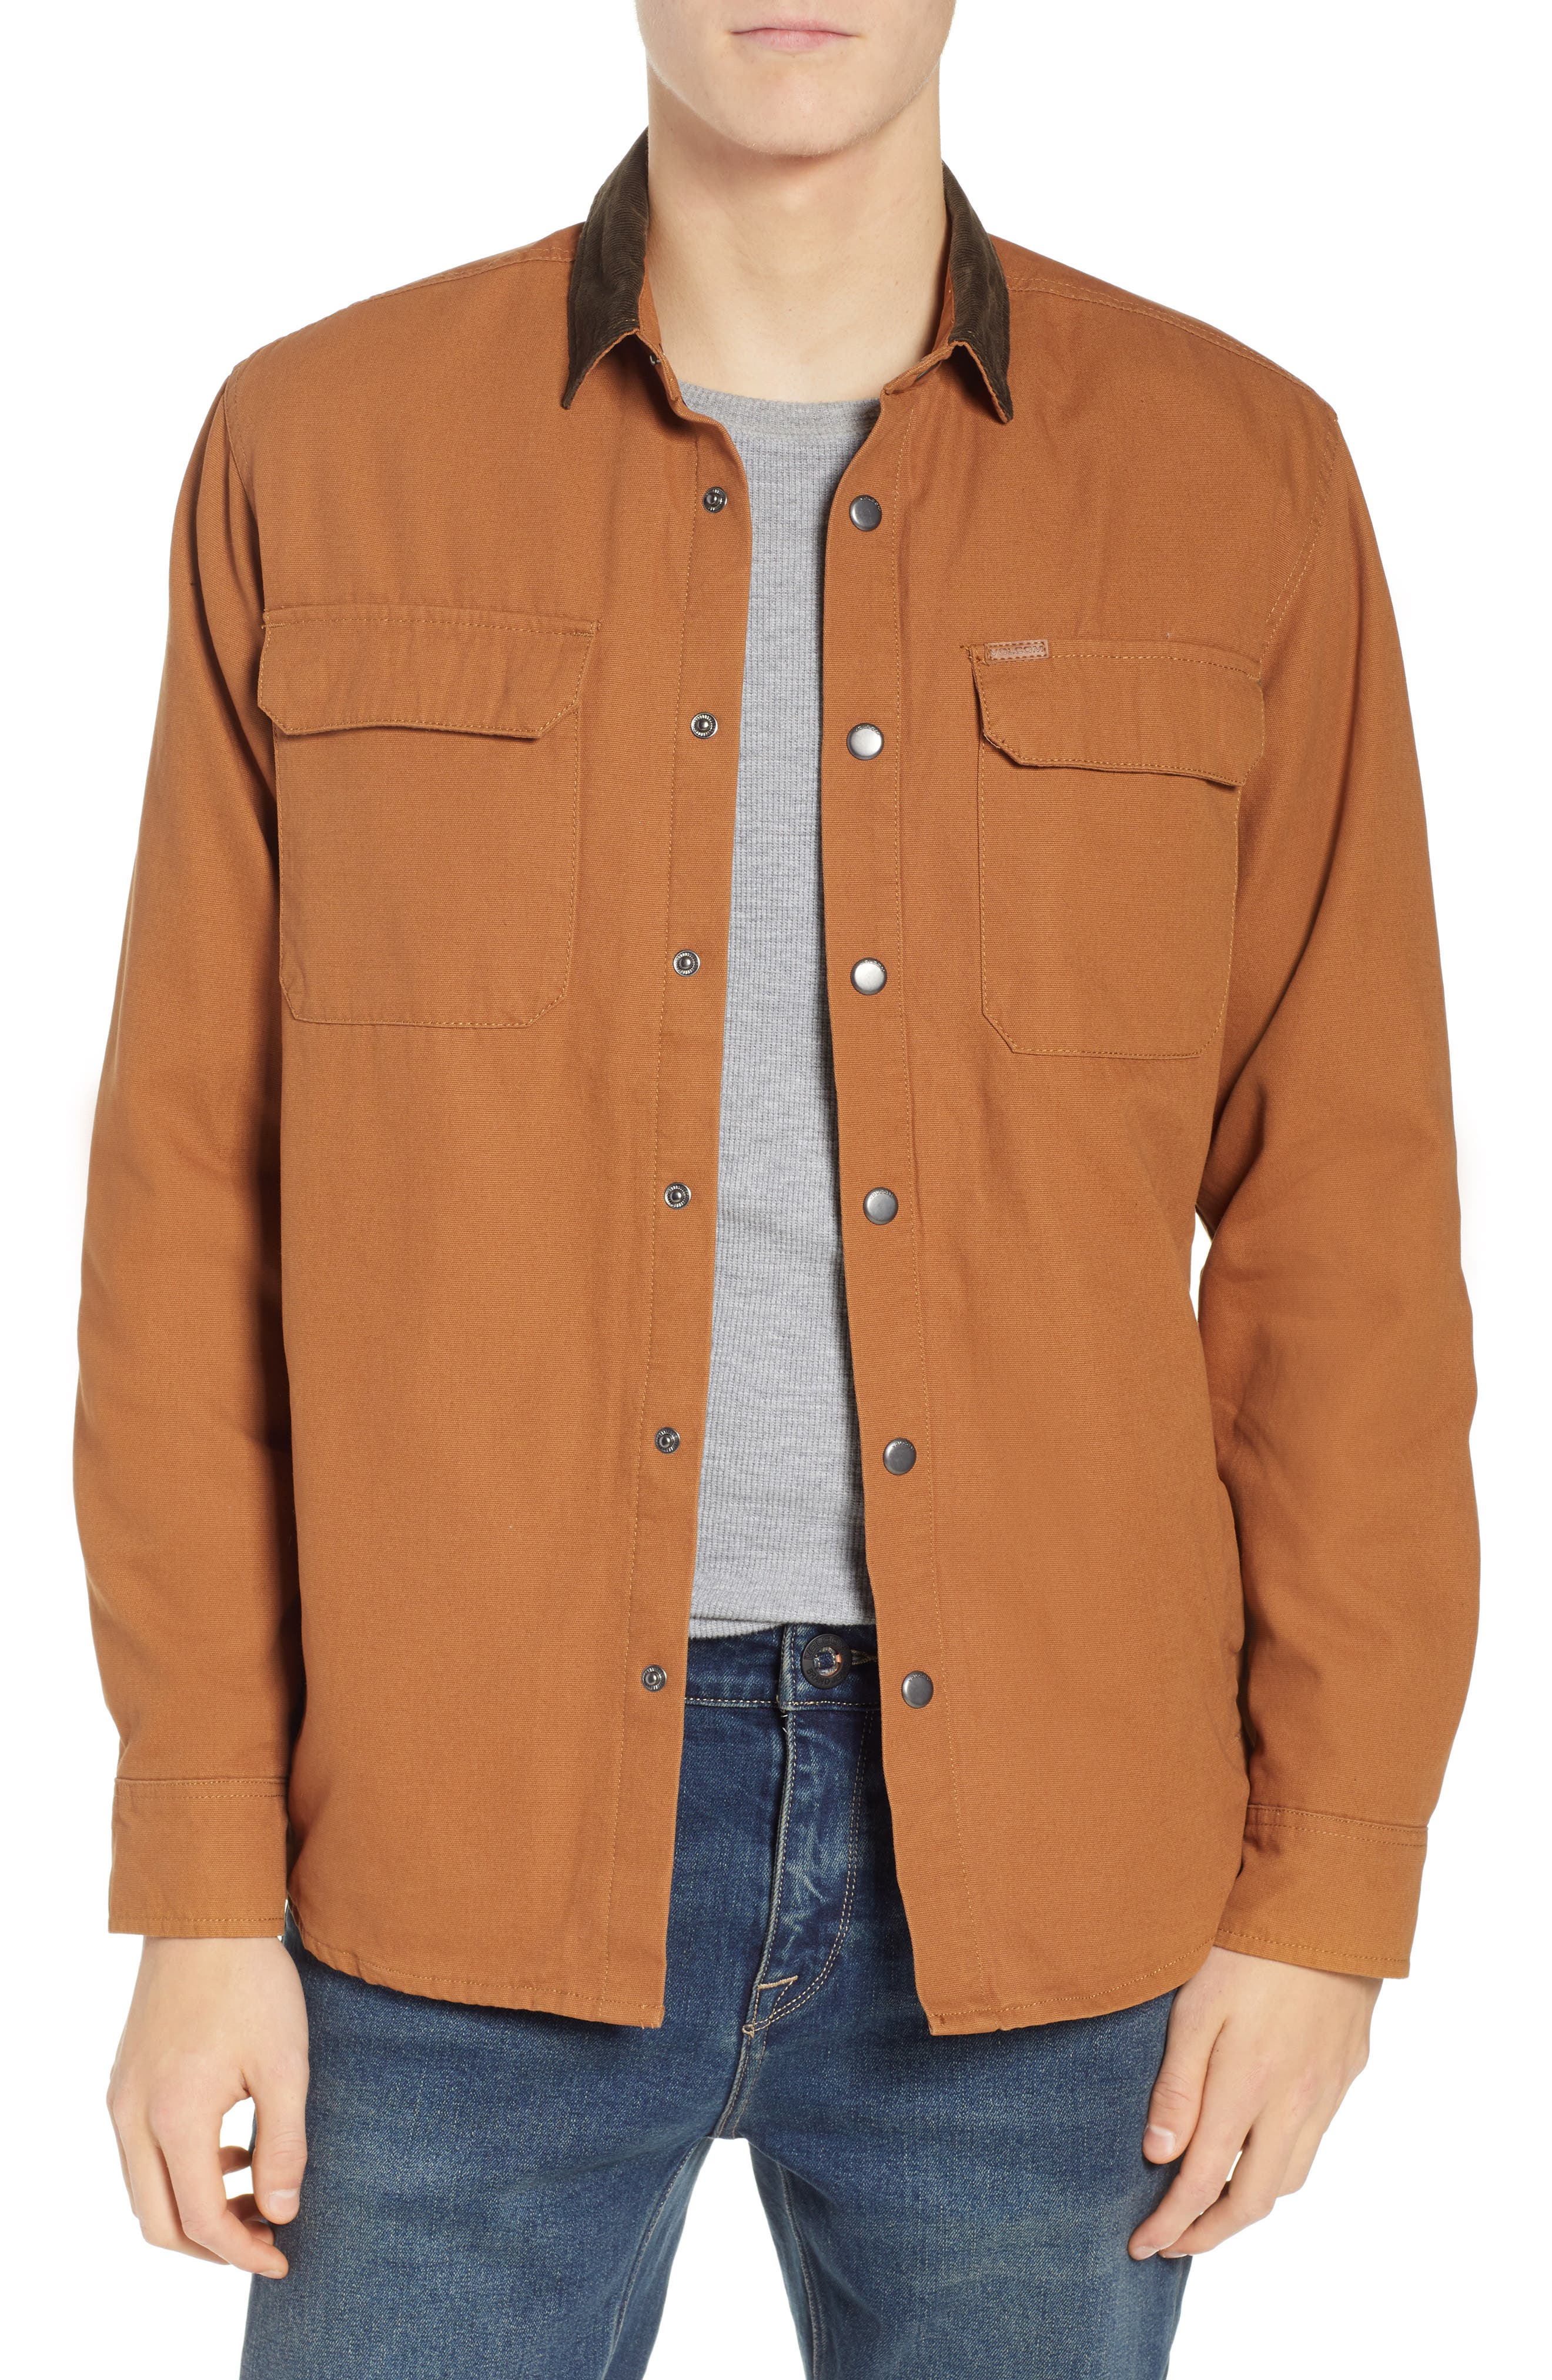 Larkin Classic Fit Jacket,                             Main thumbnail 1, color,                             CAMEL